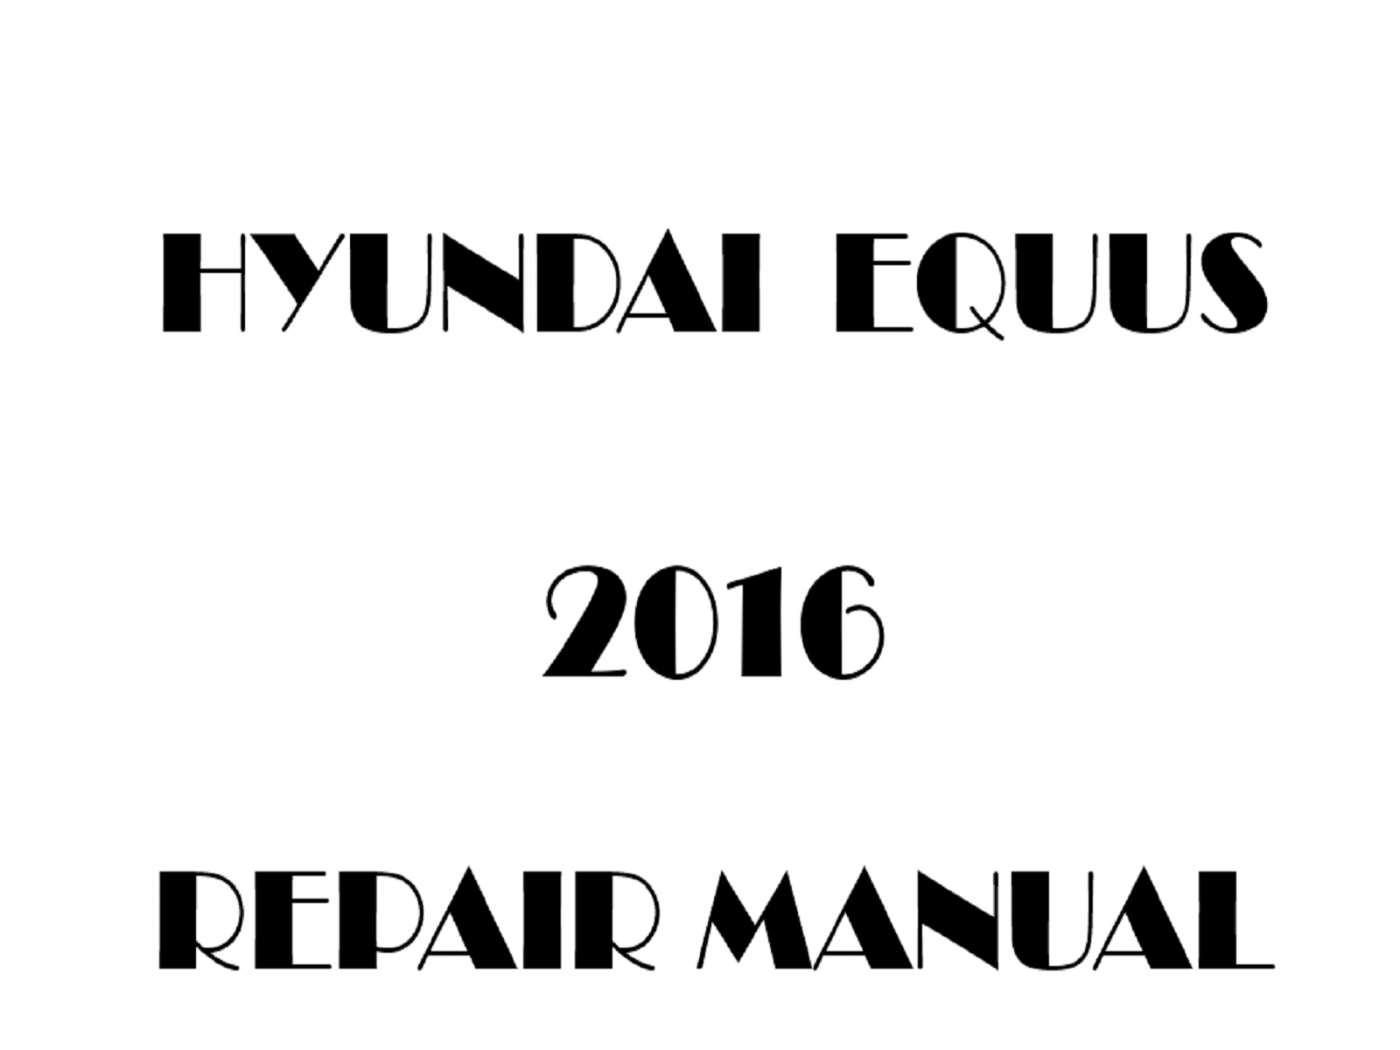 2016 Hyundai Equus repair manual